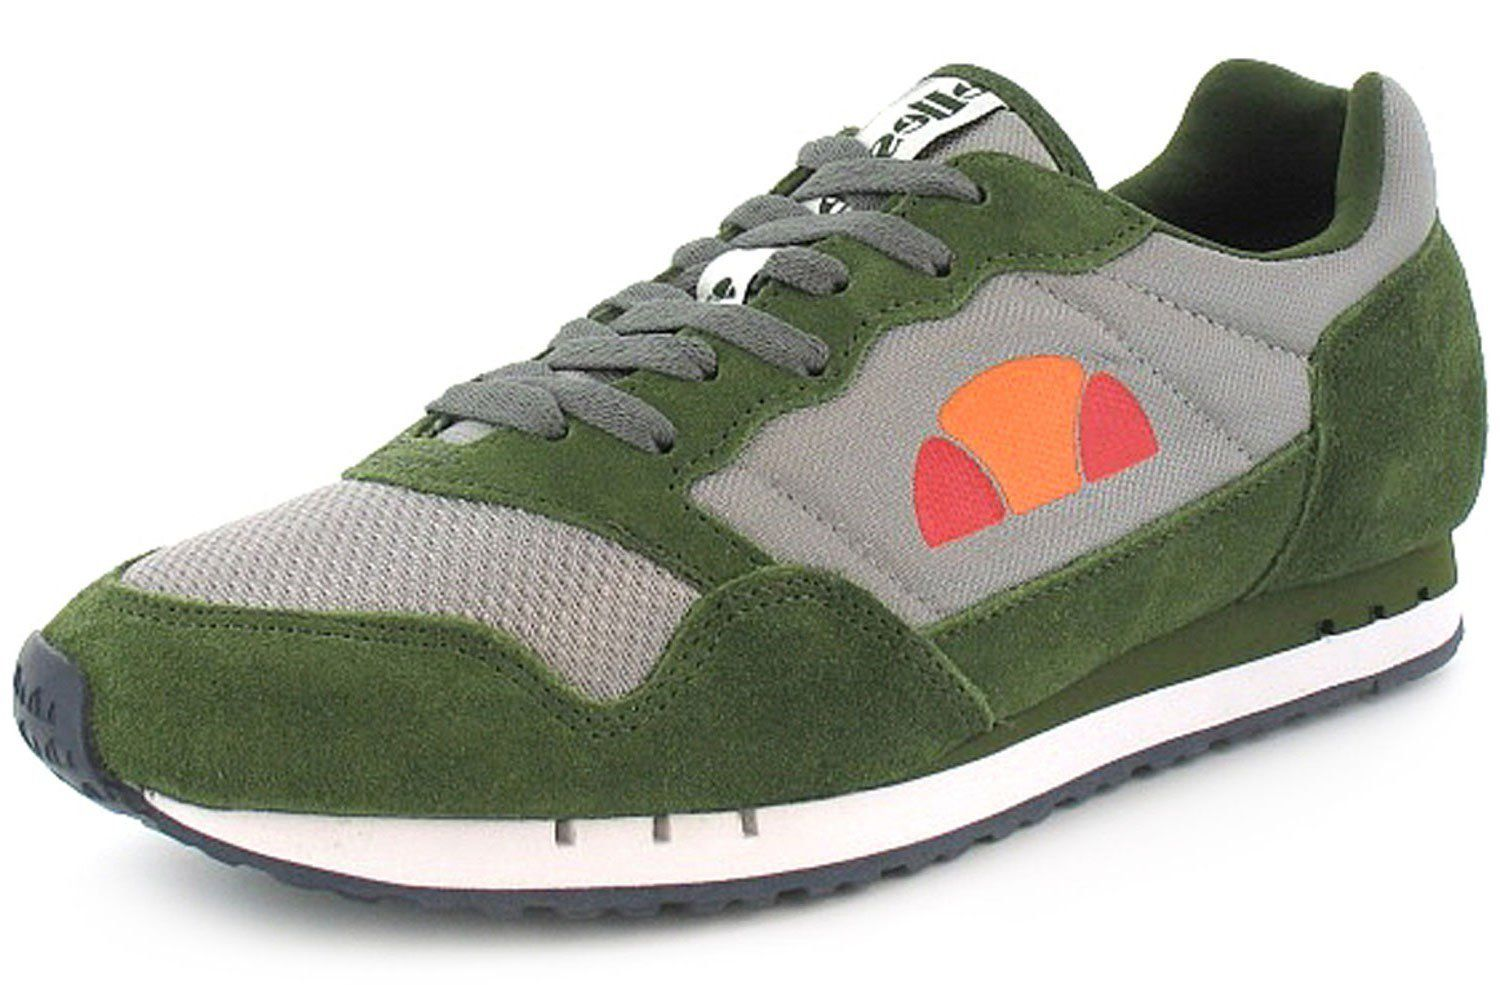 8219019d06a Mens Gents Green Ellesse Lace Up Retro Running Shoes Trainers - Grey Green  - UK SIZE 11  Amazon.co.uk  Shoes   Bags